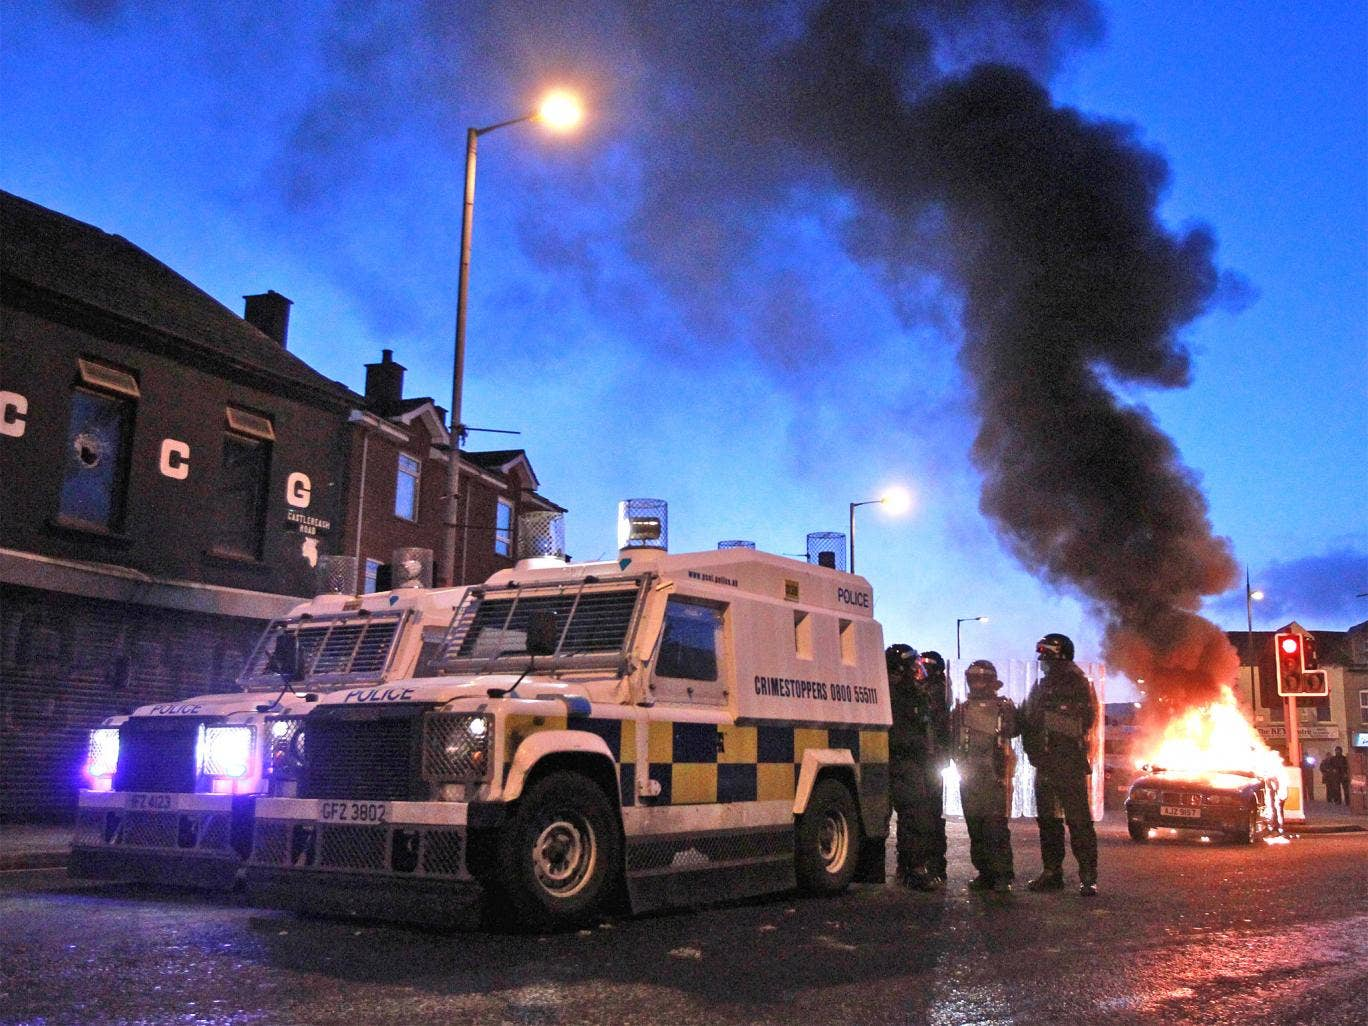 Police stand by their armoured vehicles as a car burns following violence east Belfast in January